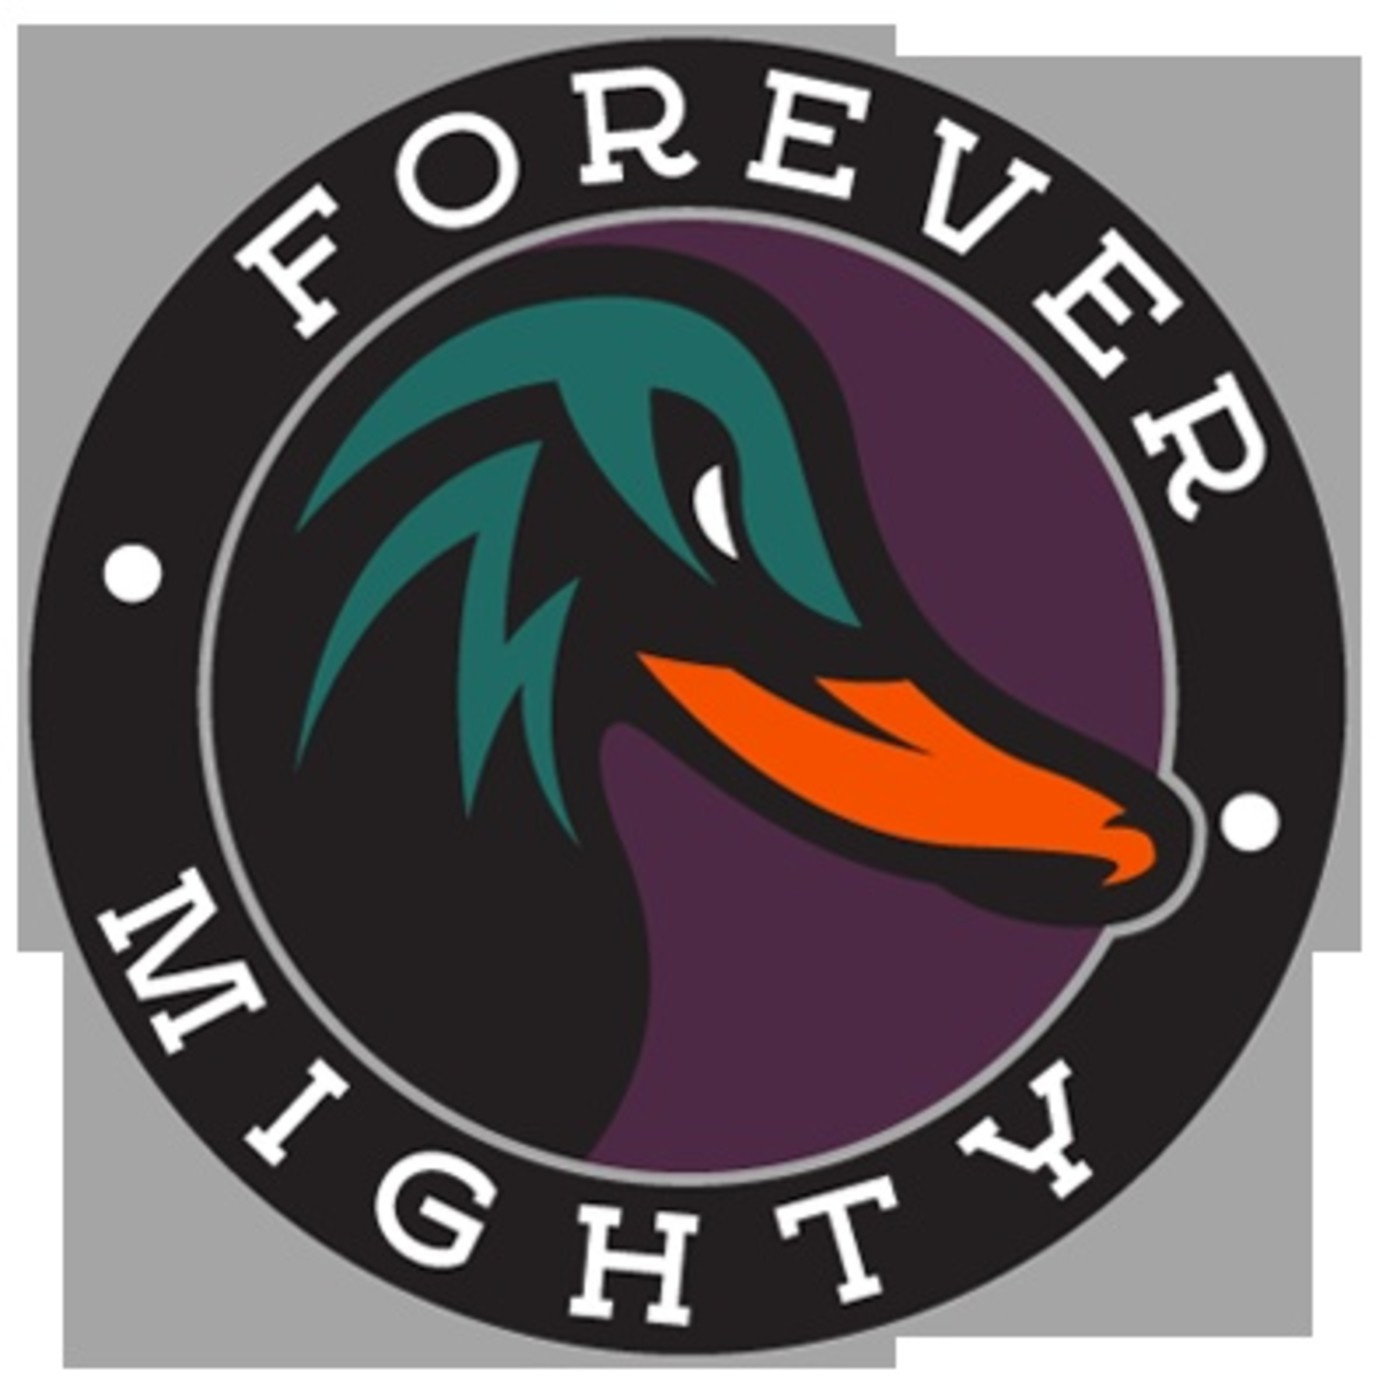 Forever Mighty Podcast - No Shine in Florida - Nov. 24, 2019